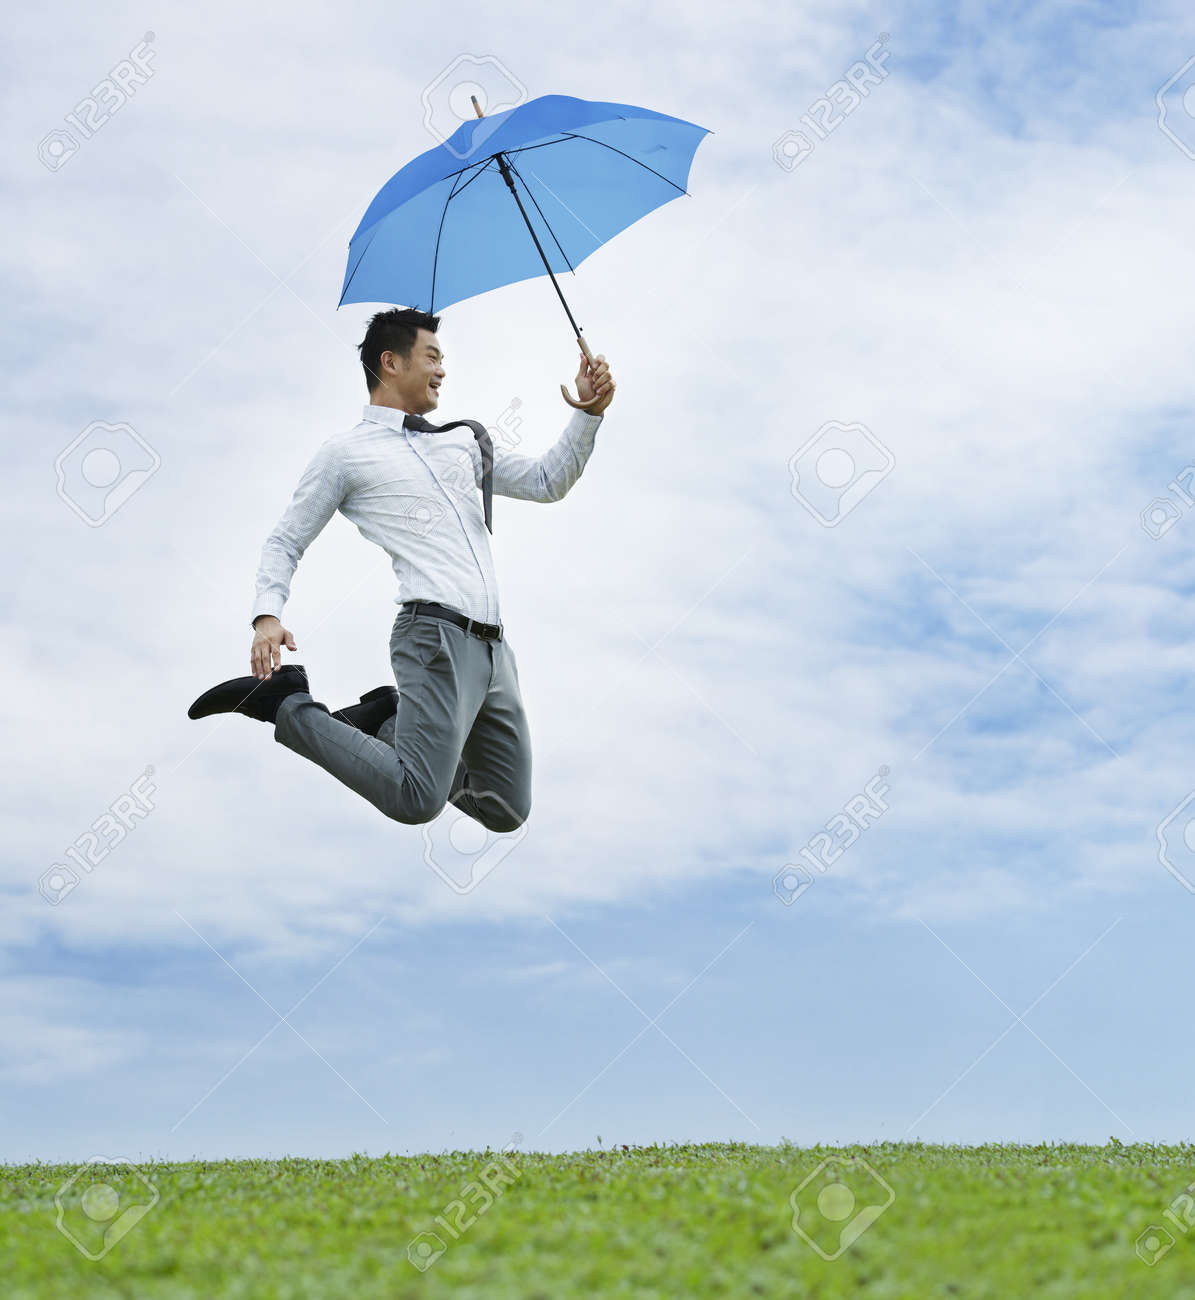 Conceptual Stock image of an Asian business man jumping for joy Stock Photo - 10963440